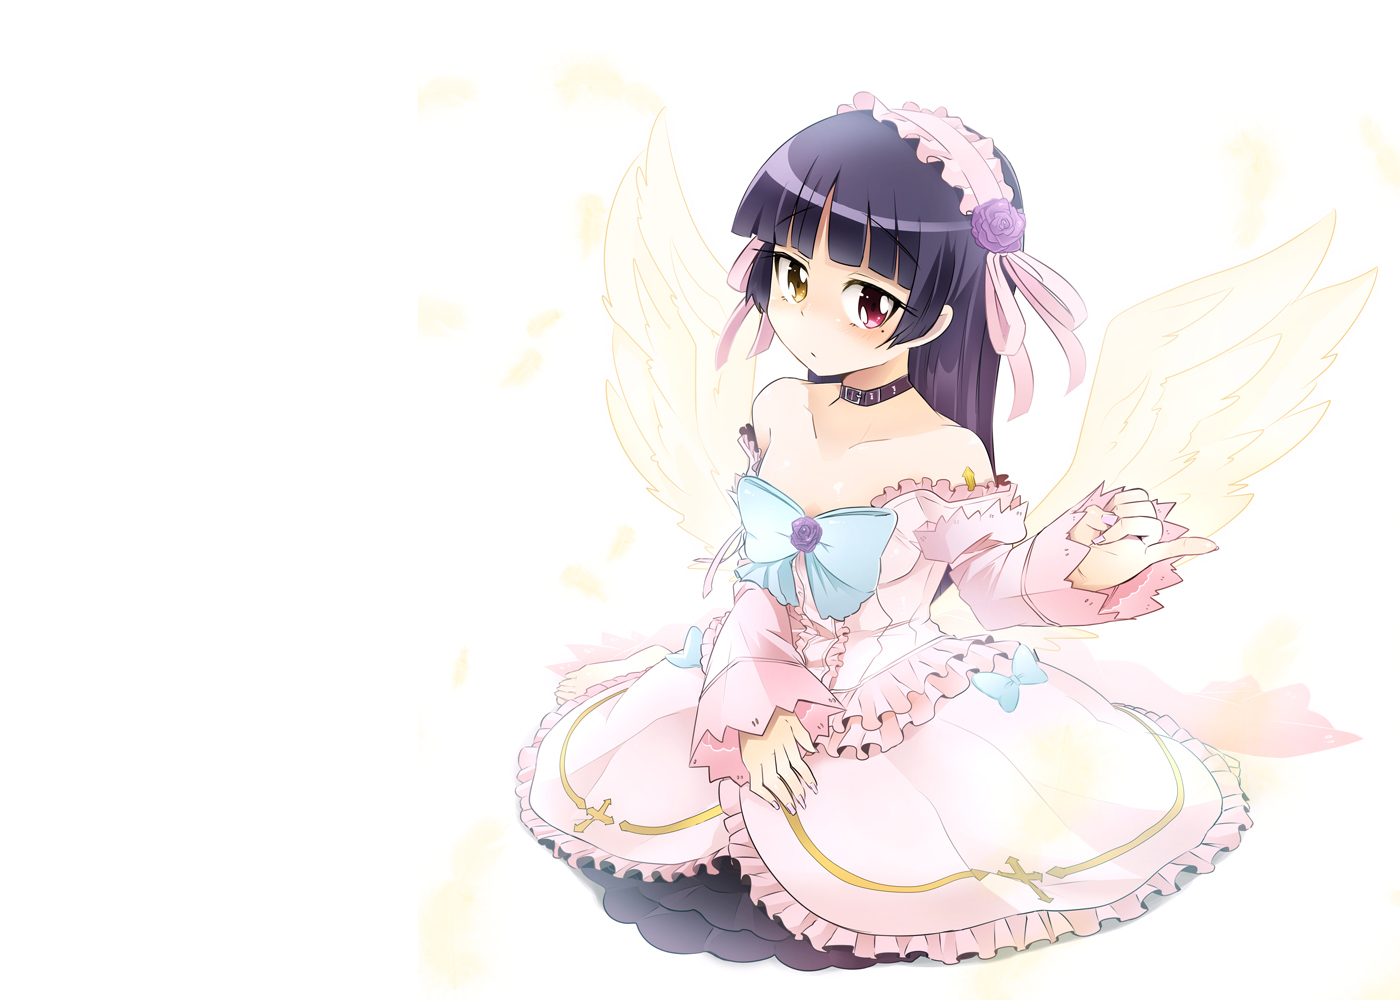 bicolored_eyes gokou_ruri ore_no_imouto_ga_konna_ni_kawaii_wake_ga_nai photoshop white wings zuzu